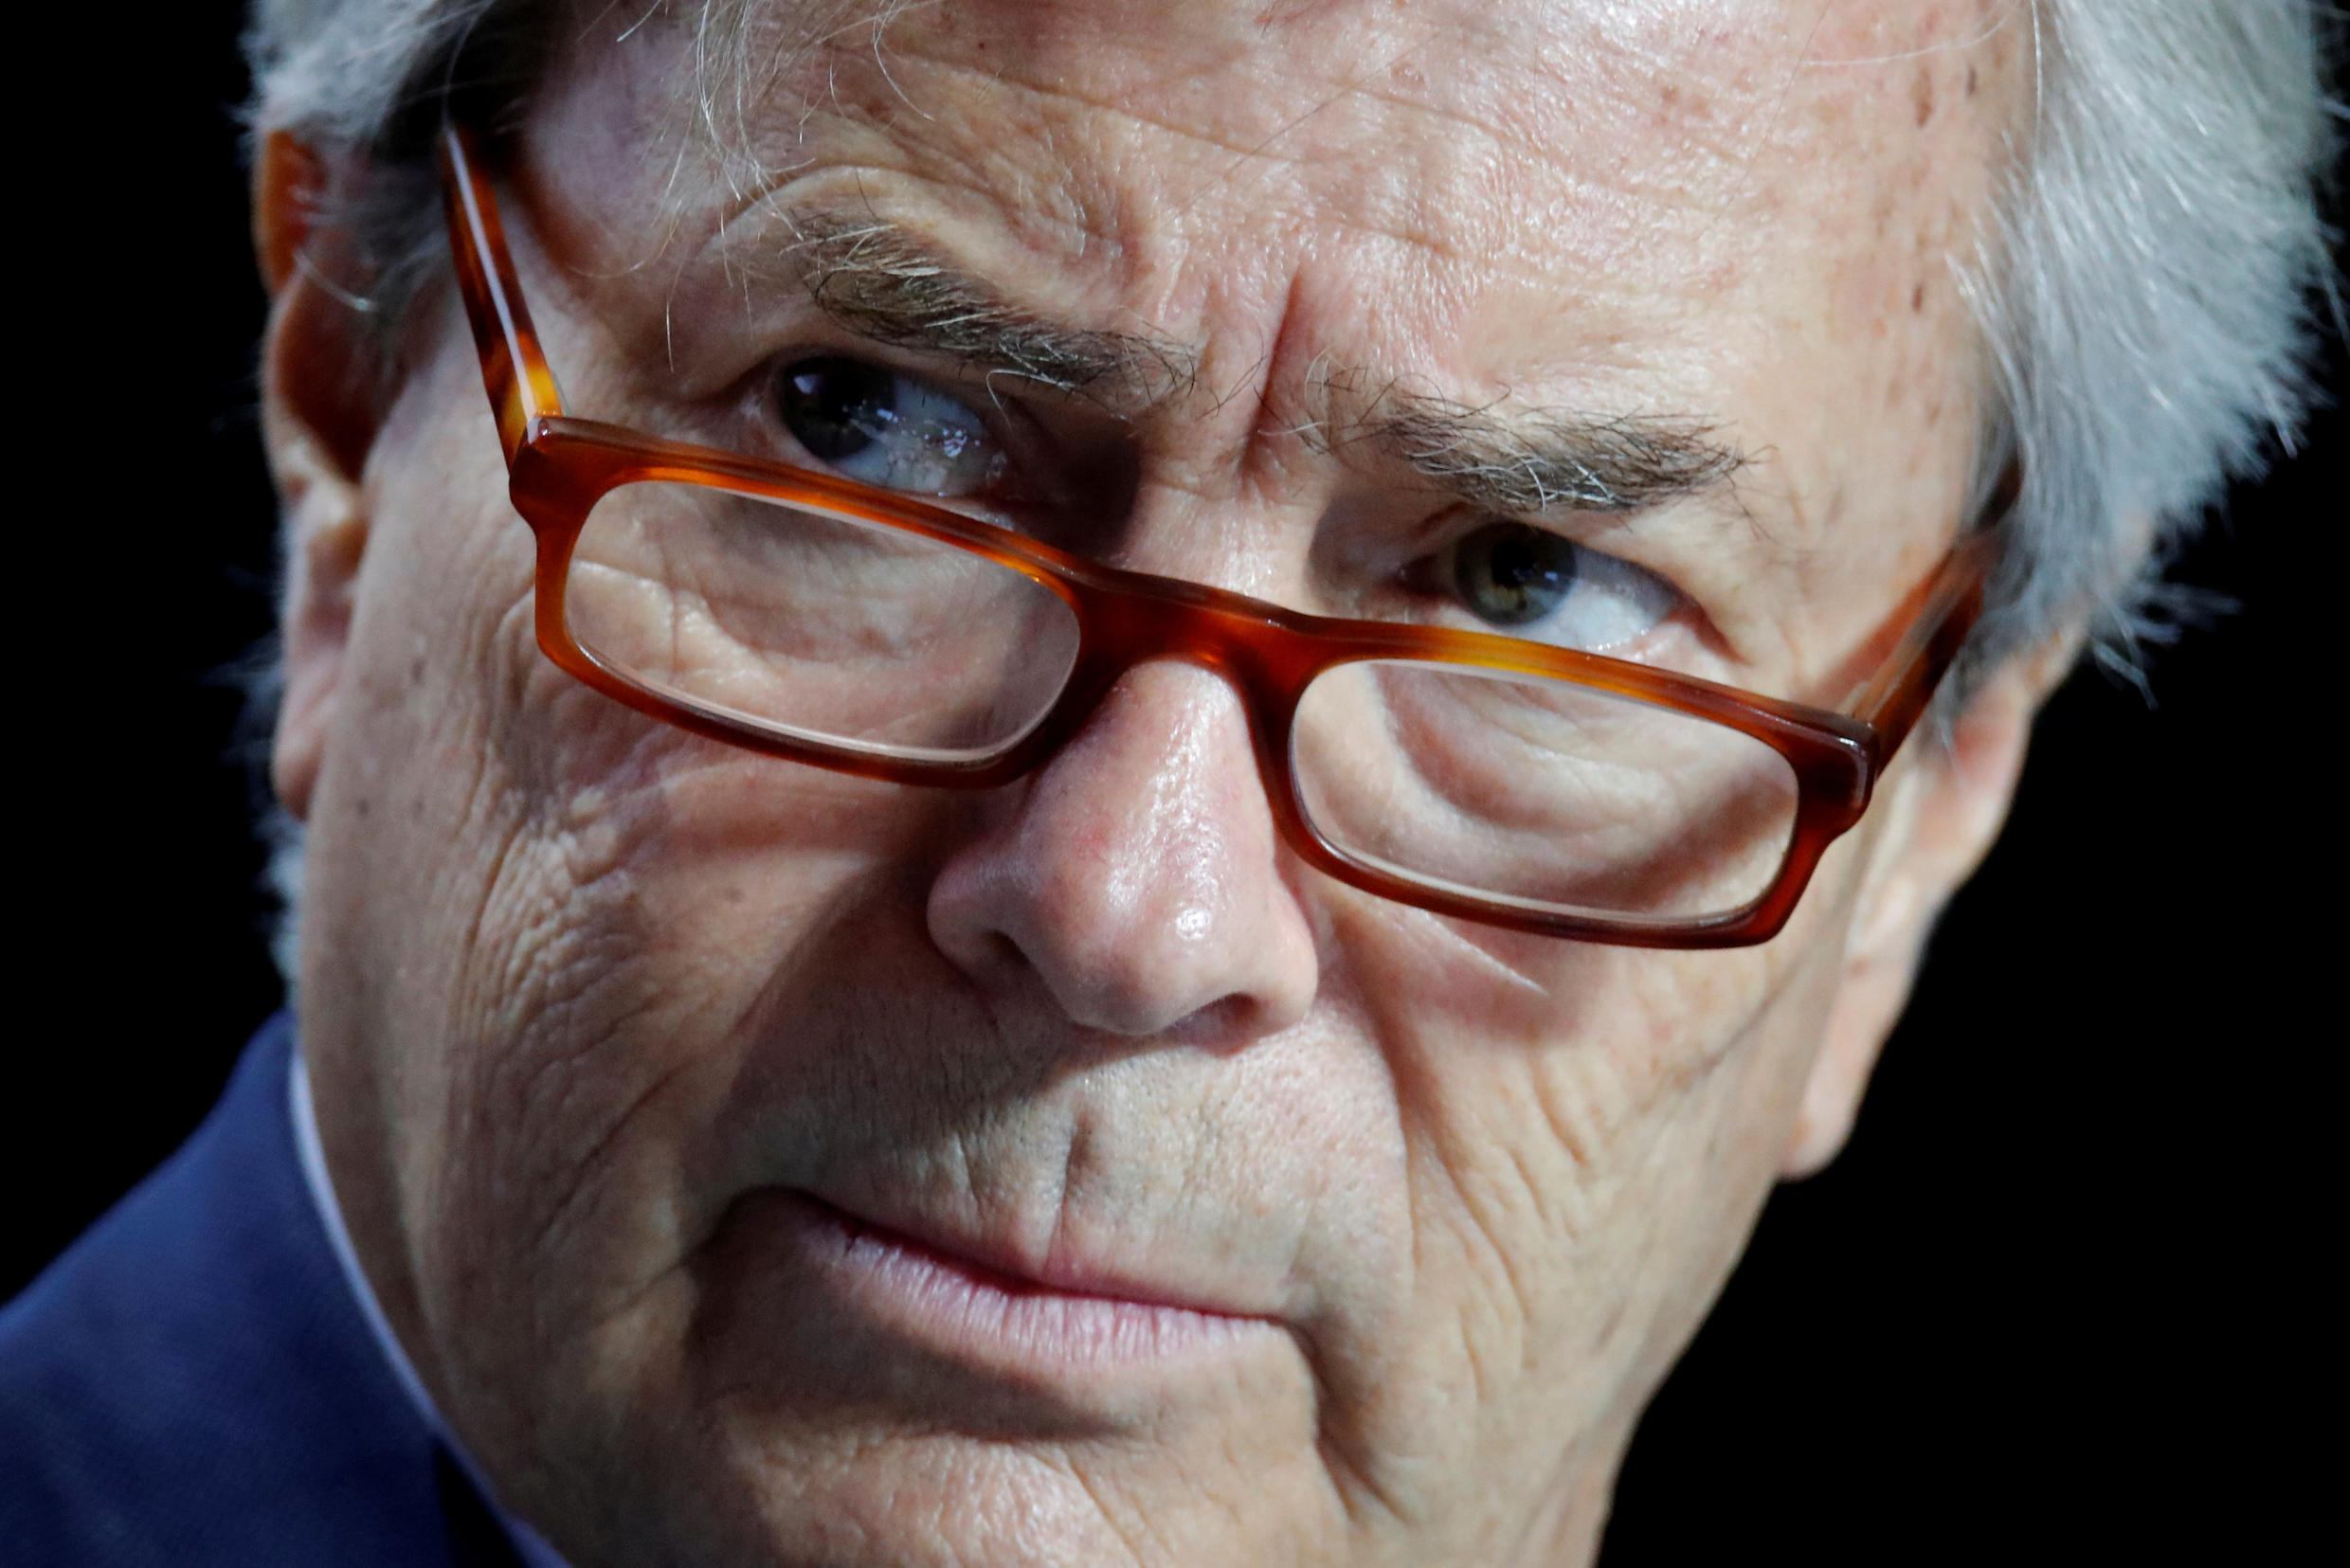 Former Bolloré boss Vincent Bolloré, who recently handed over the company reins to his son, Yannick